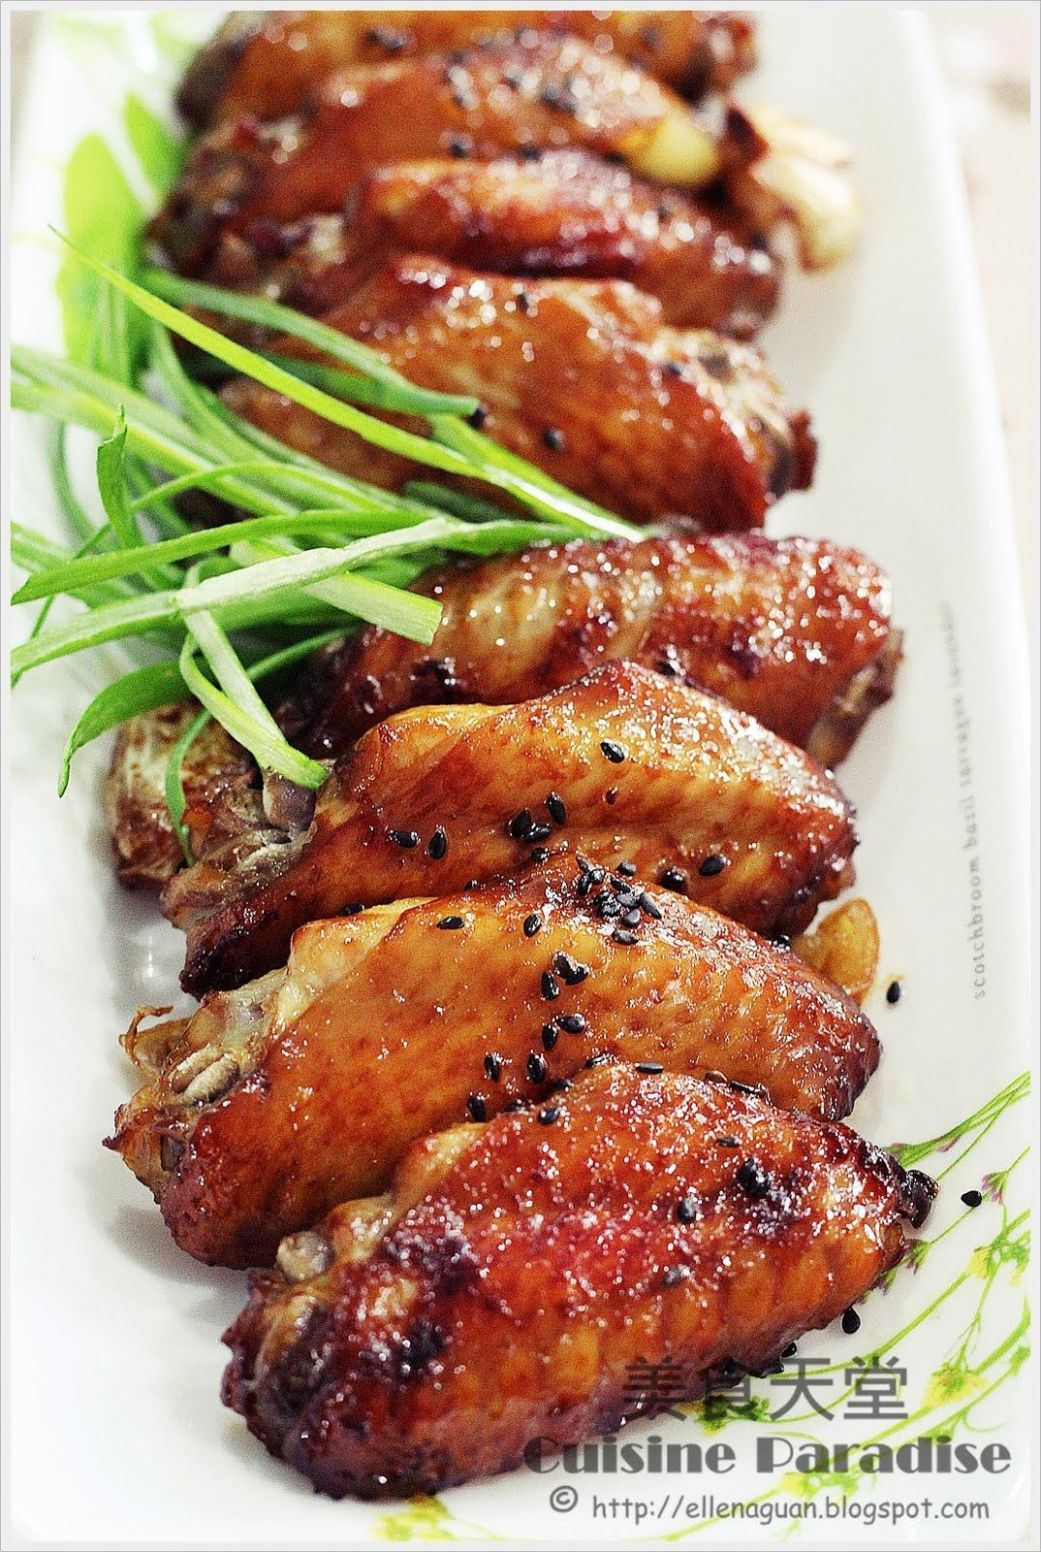 Grilled Sasame Chicken Mid-Joints | Food, Food recipes, Singapore food - Food Recipes Singapore